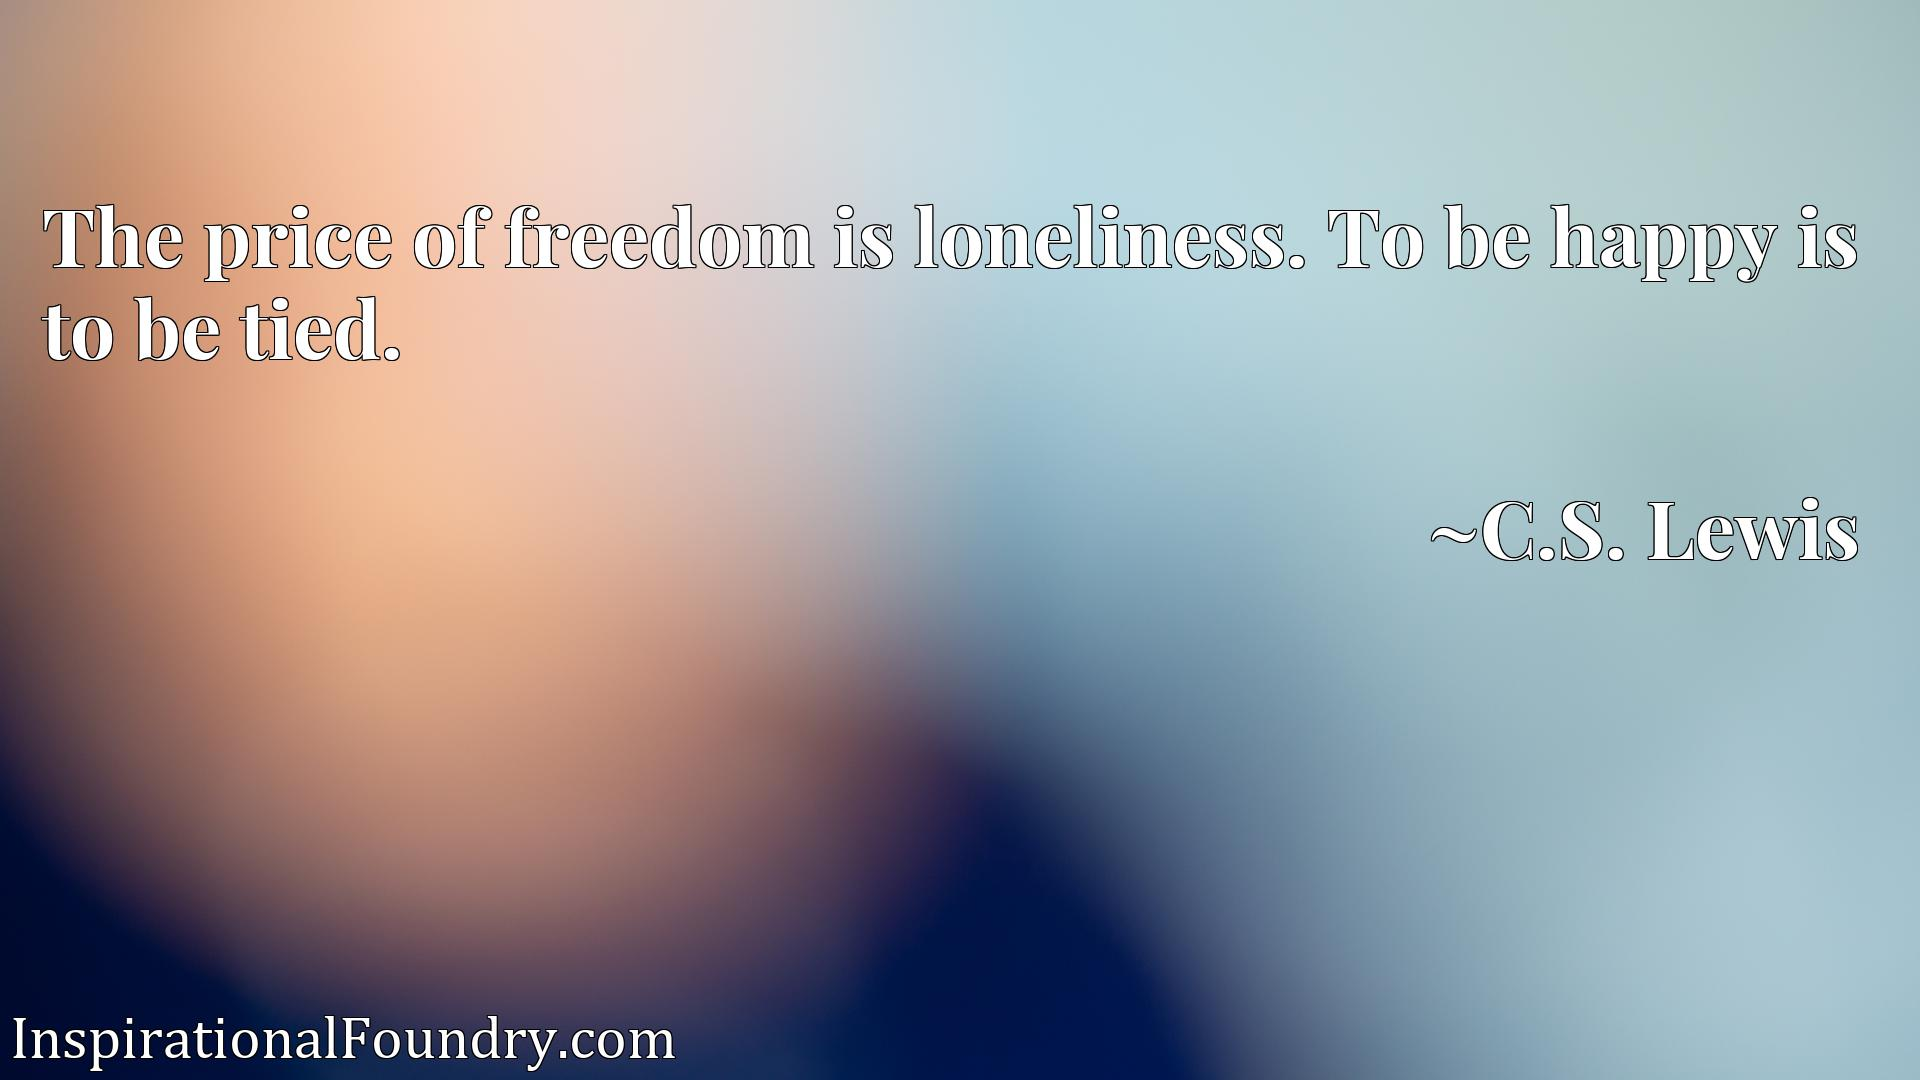 Quote Picture :The price of freedom is loneliness. To be happy is to be tied.